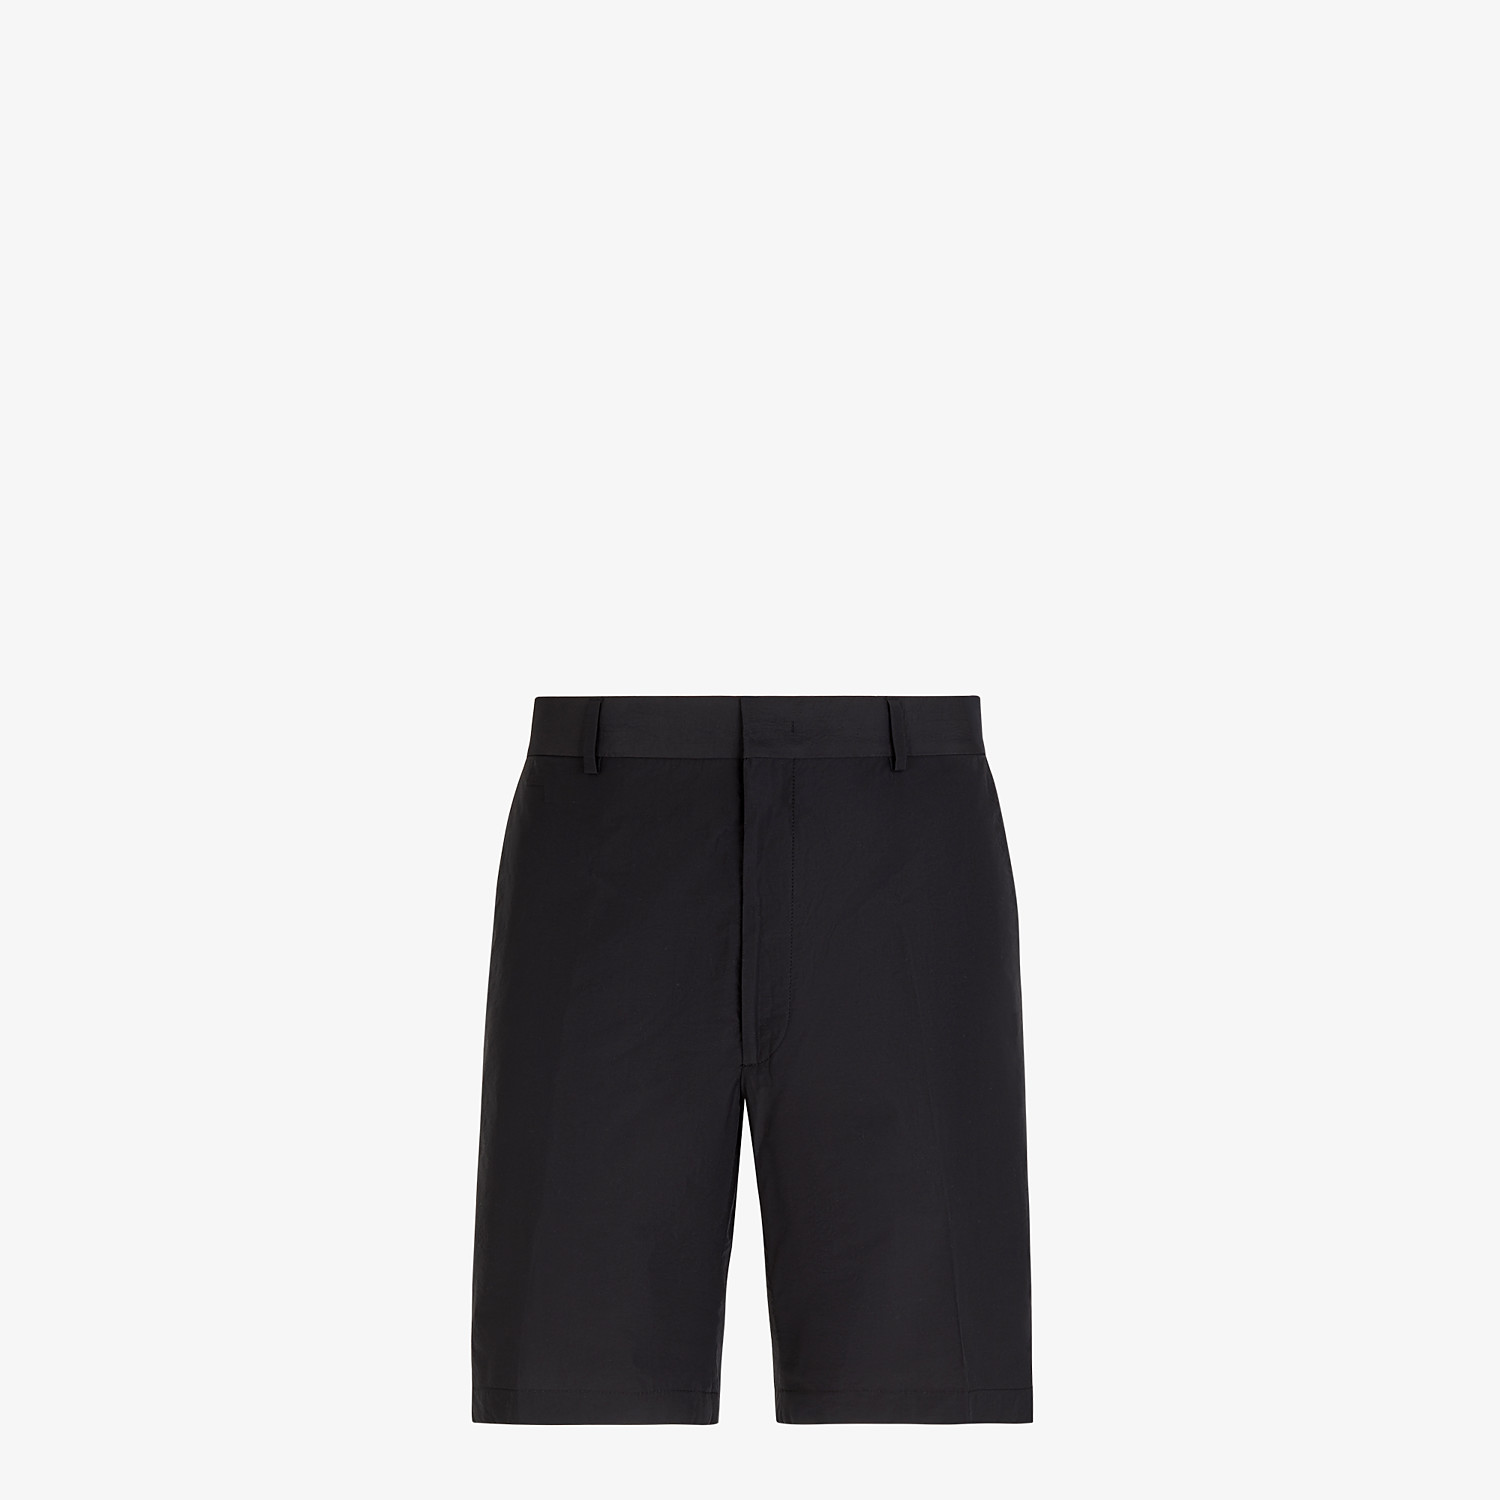 FENDI BERMUDAS - Black nylon and cotton trousers - view 1 detail